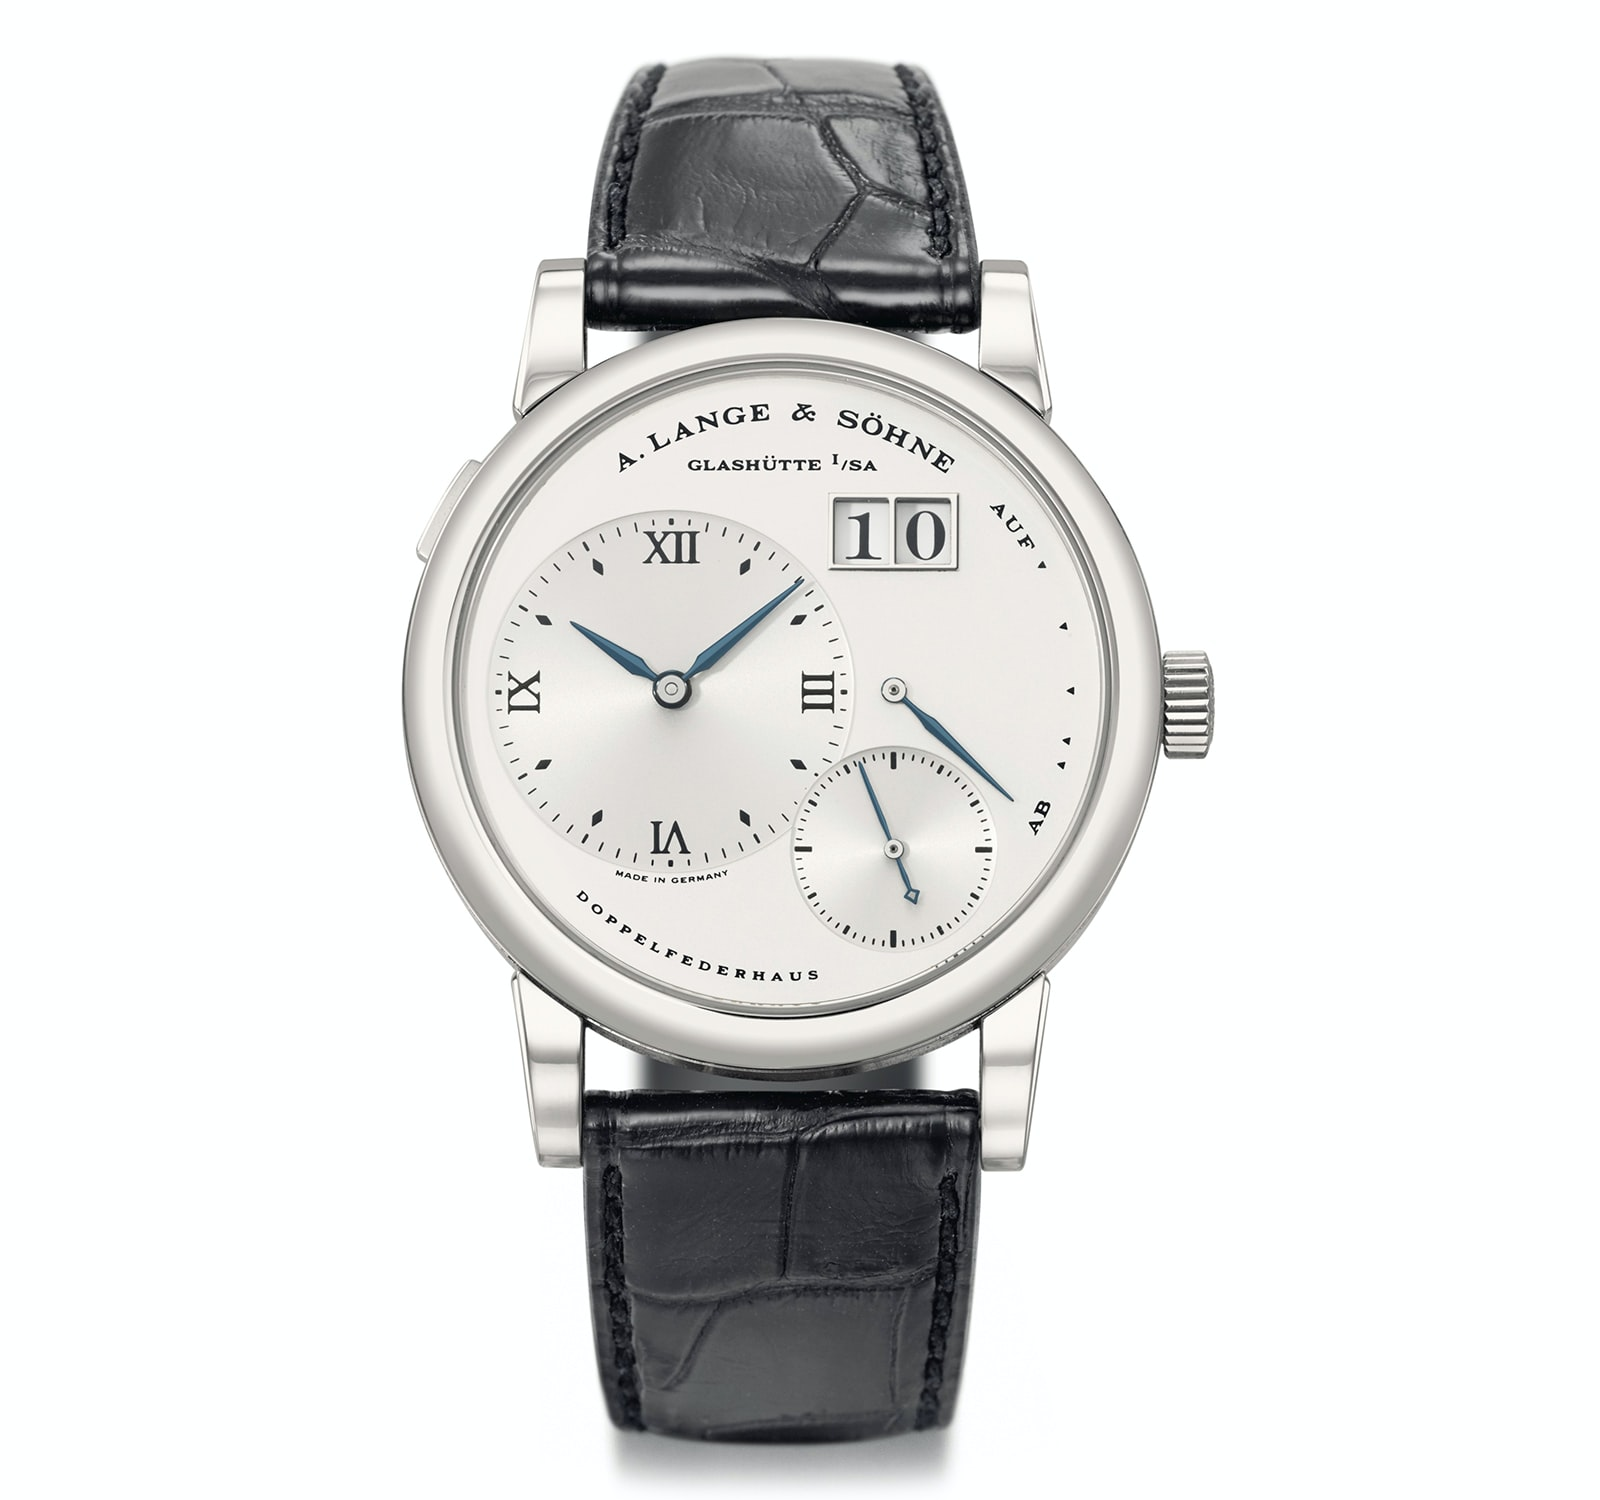 Lange 1 steel Some Lessons From Christie's Latest Auction In Geneva (Spoiler Alert: Vintage Patek Is Still King) Some Lessons From Christie's Latest Auction In Geneva (Spoiler Alert: Vintage Patek Is Still King) iuuuuu